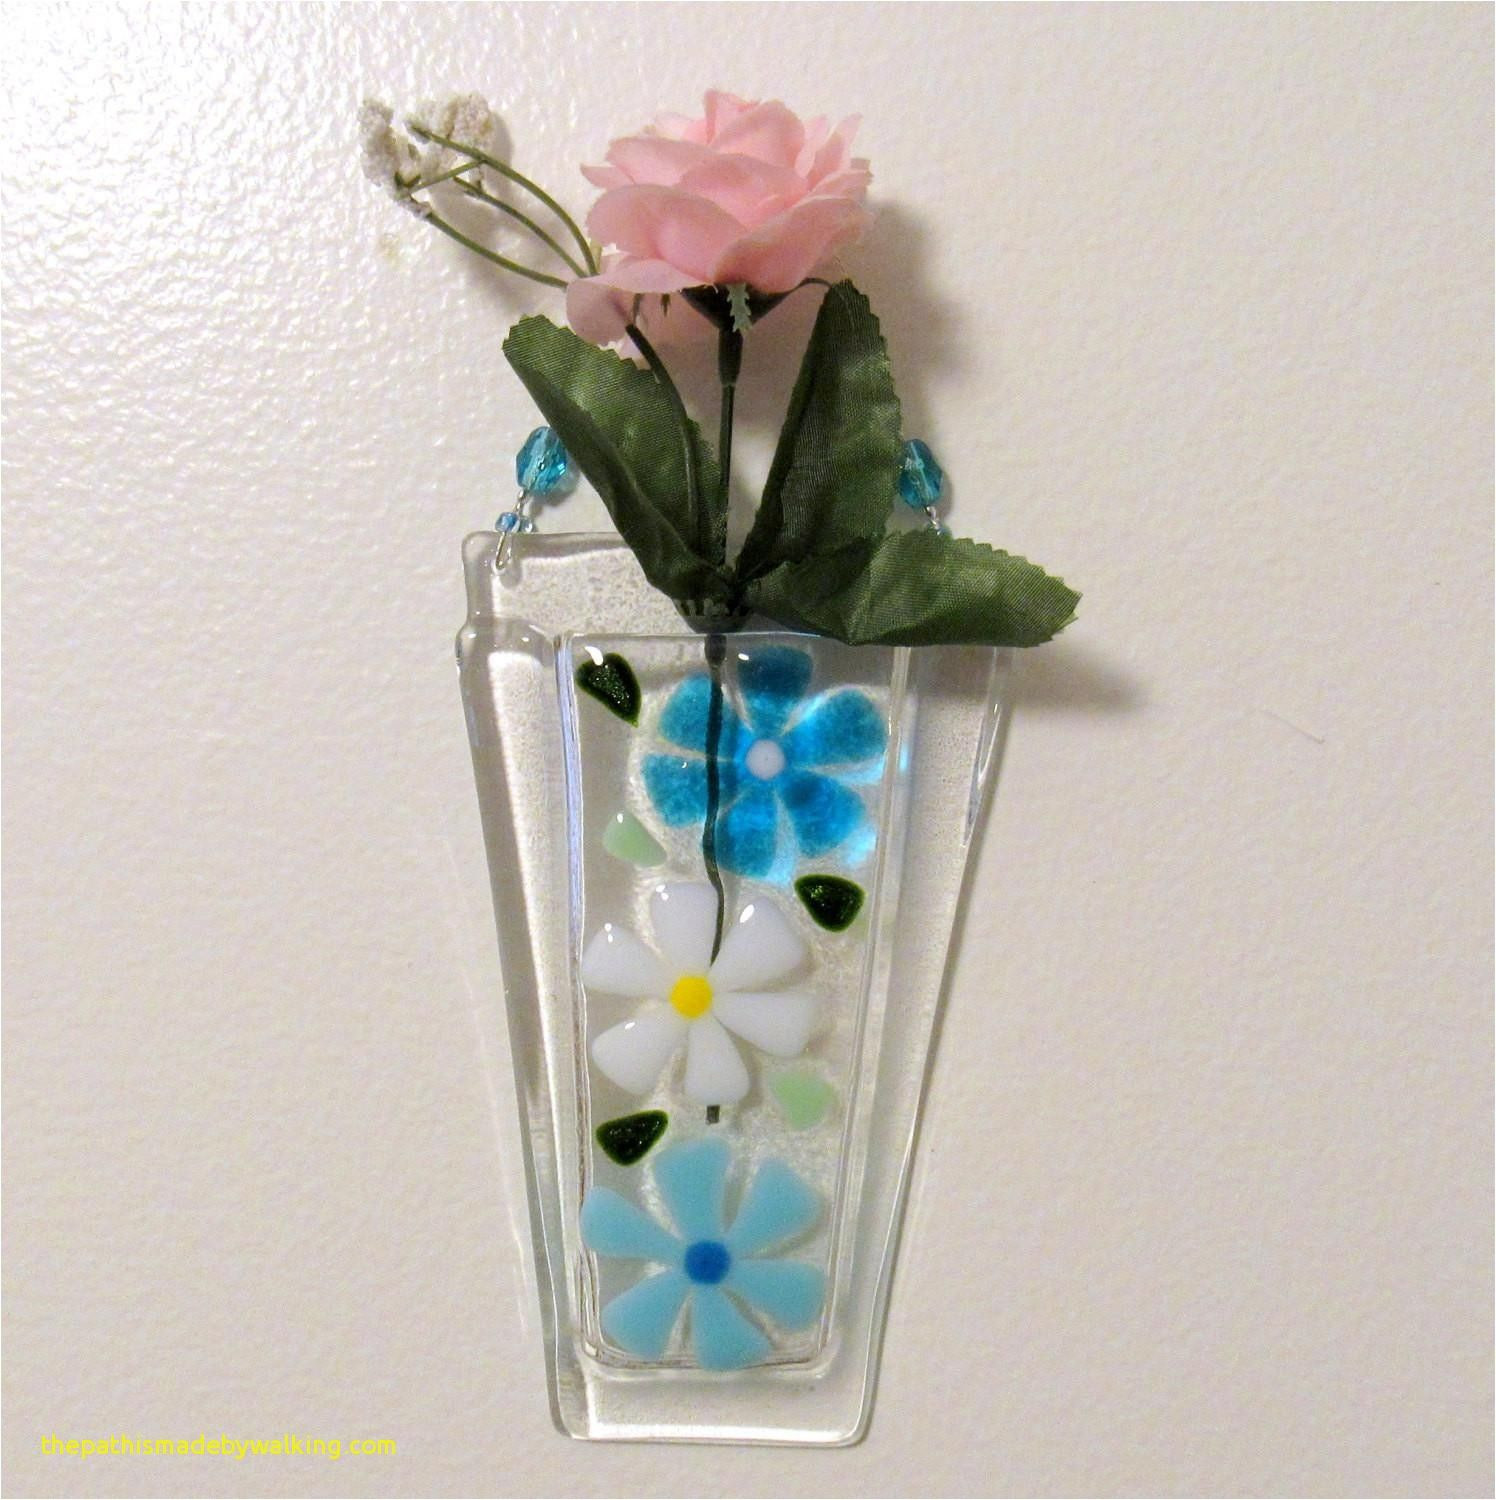 29 Cute Pier 1 Tall Vases 2021 free download pier 1 tall vases of wall hanging flower vase best of easy newspaper art luxury media with regard to wall hanging flower vase best of easy newspaper art luxury media cache ak0 pinimg origina